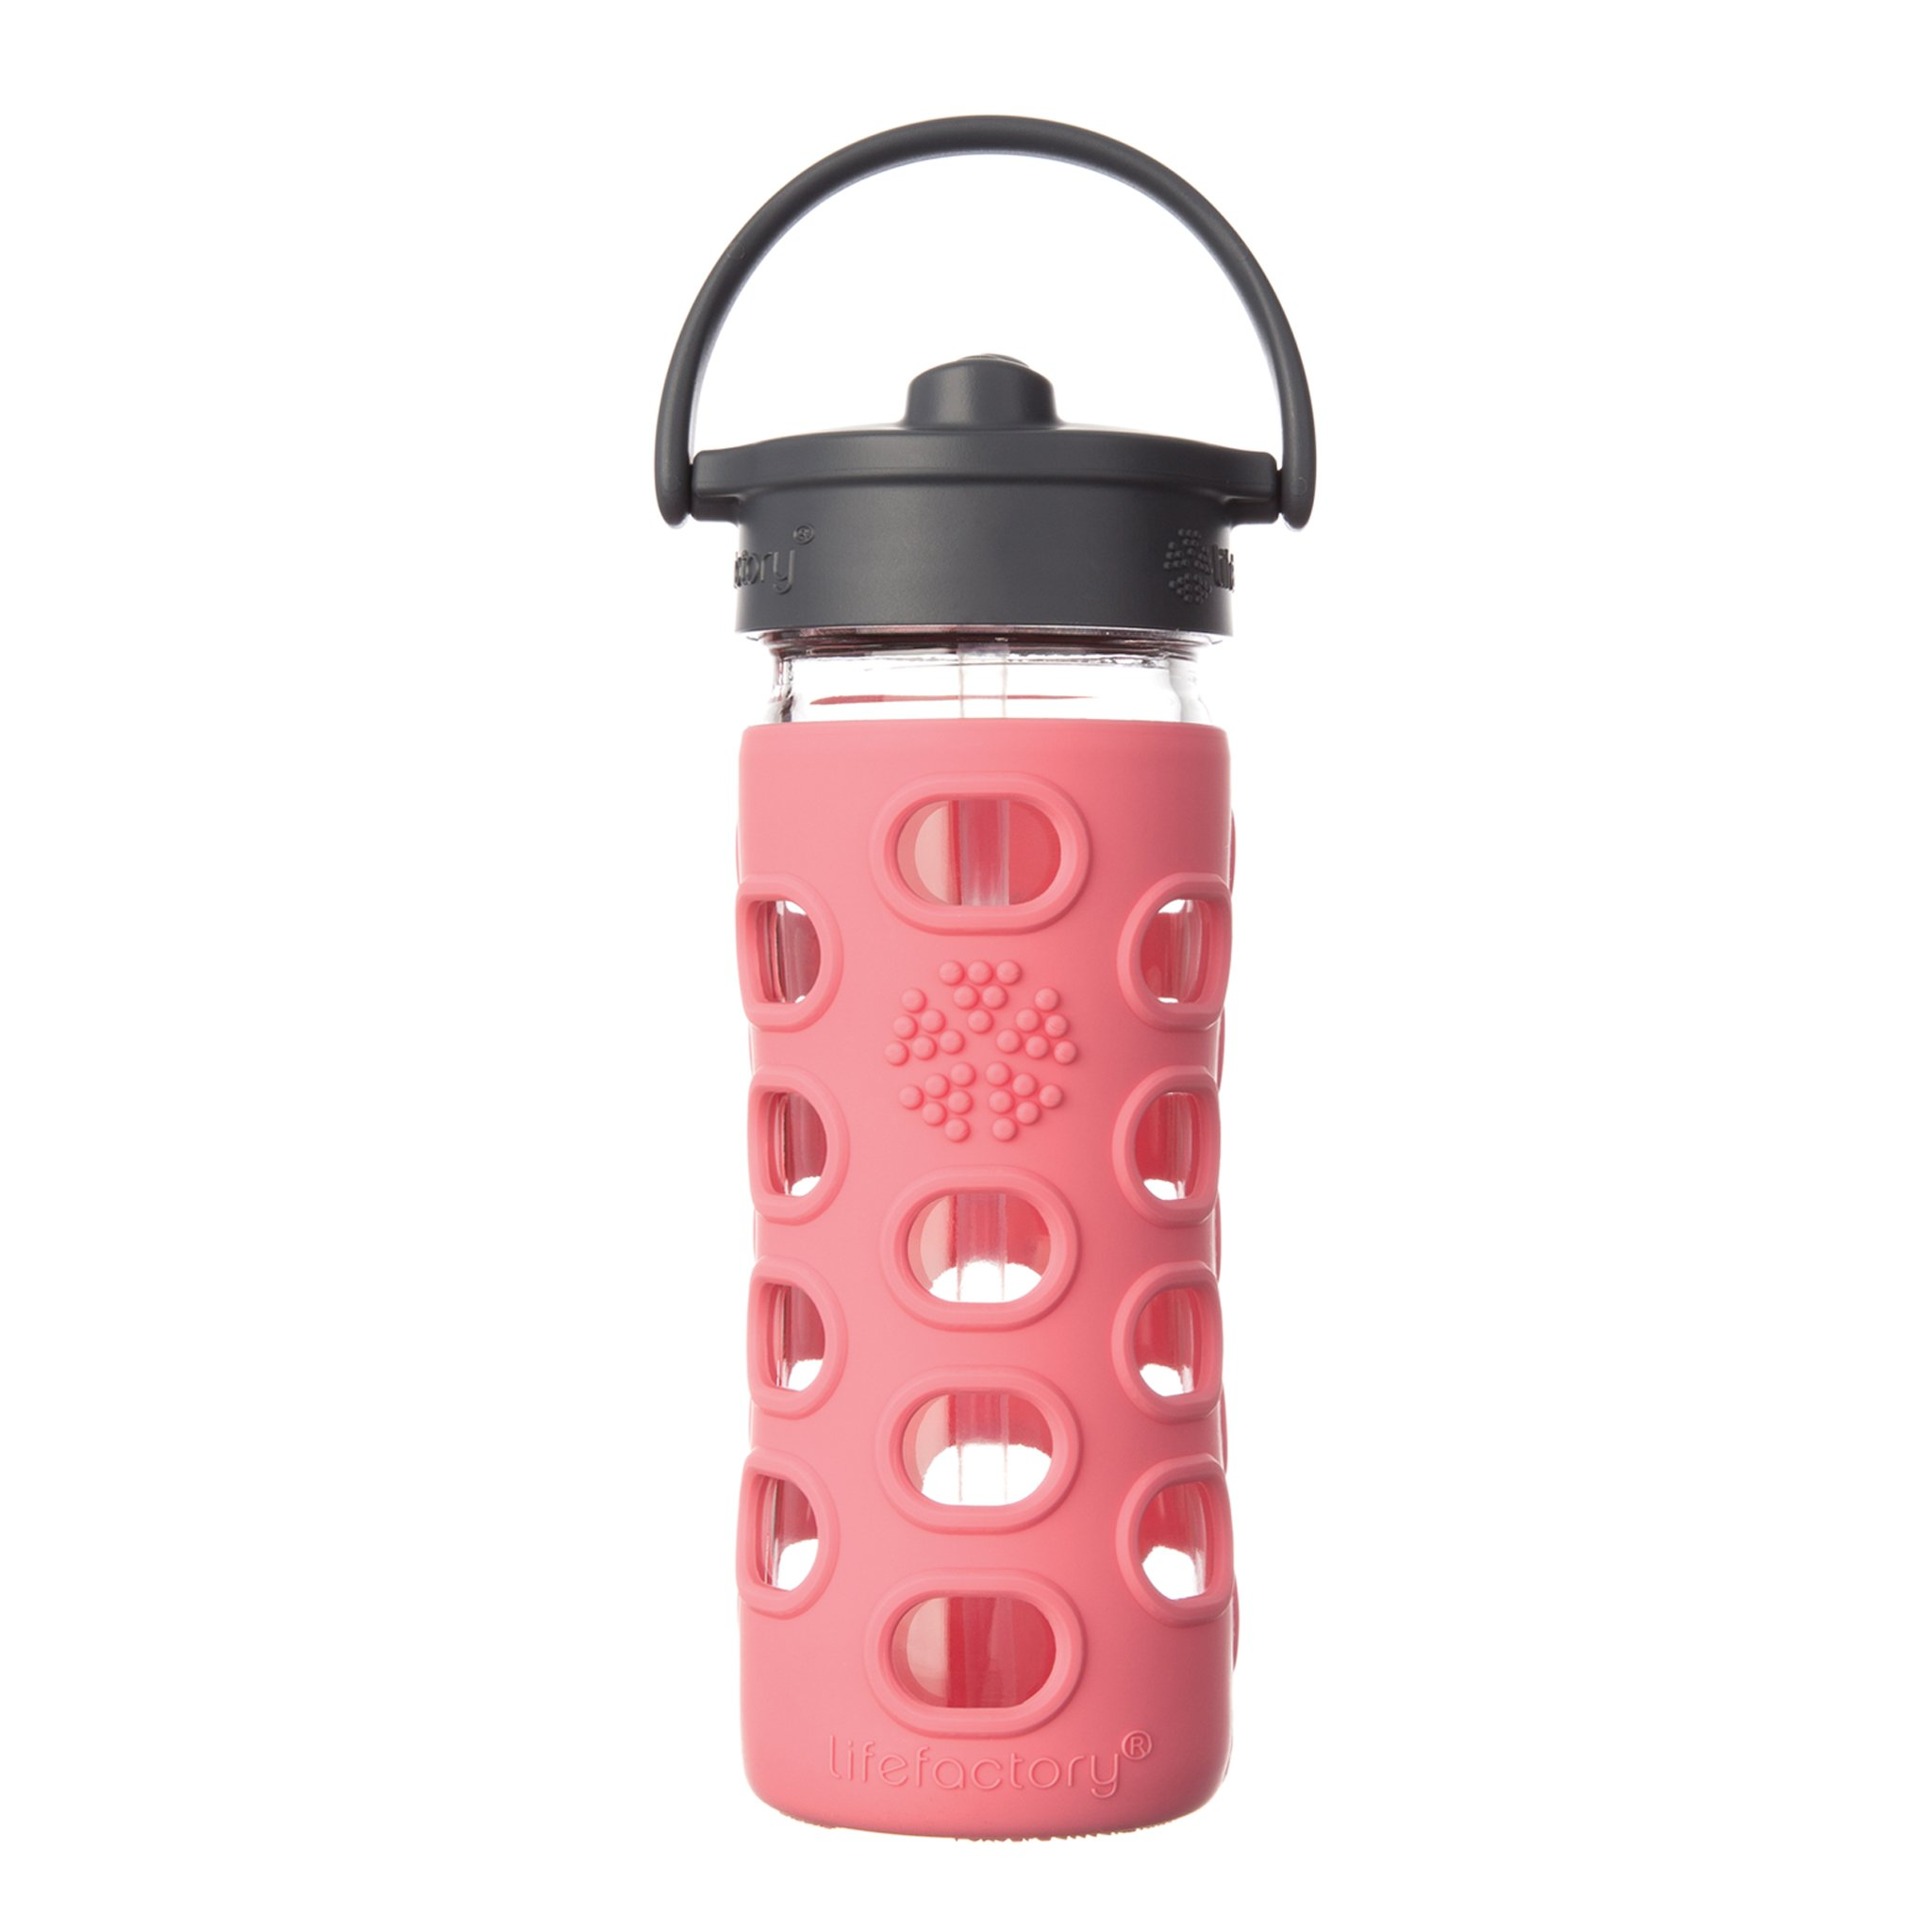 Lifefactory 12-Ounce BPA-Free Glass Water Bottle with Straw Cap and Silicone Sleeve, Coral